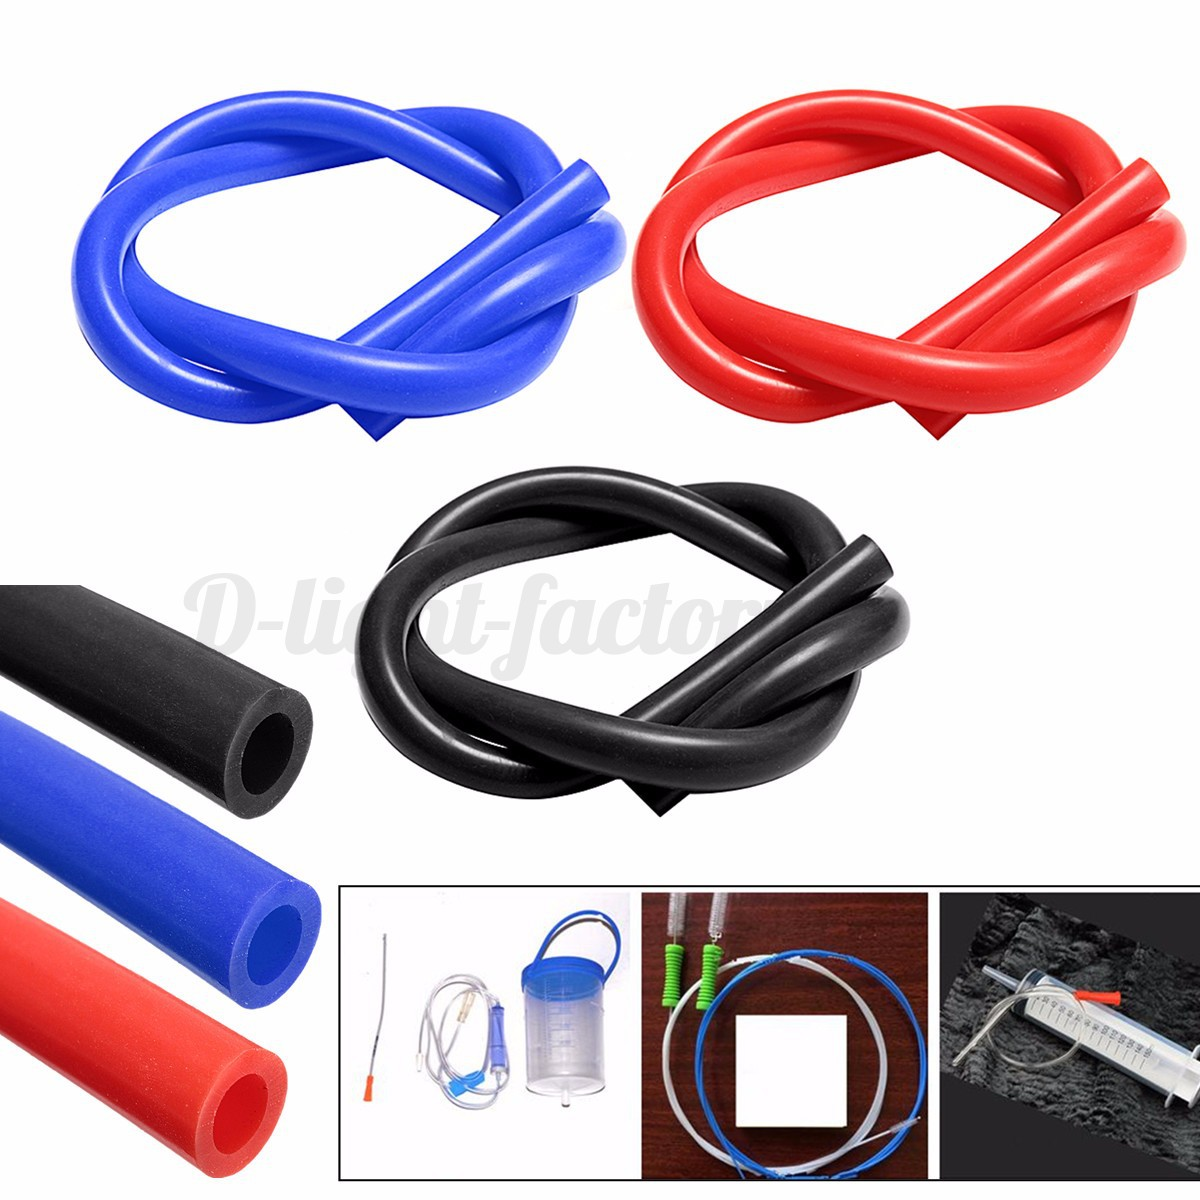 10mm 25mm Id Silicone Vacuum Hoses Rubber Pipe Tube Vac Air Water Coolant Image Is Loading I D